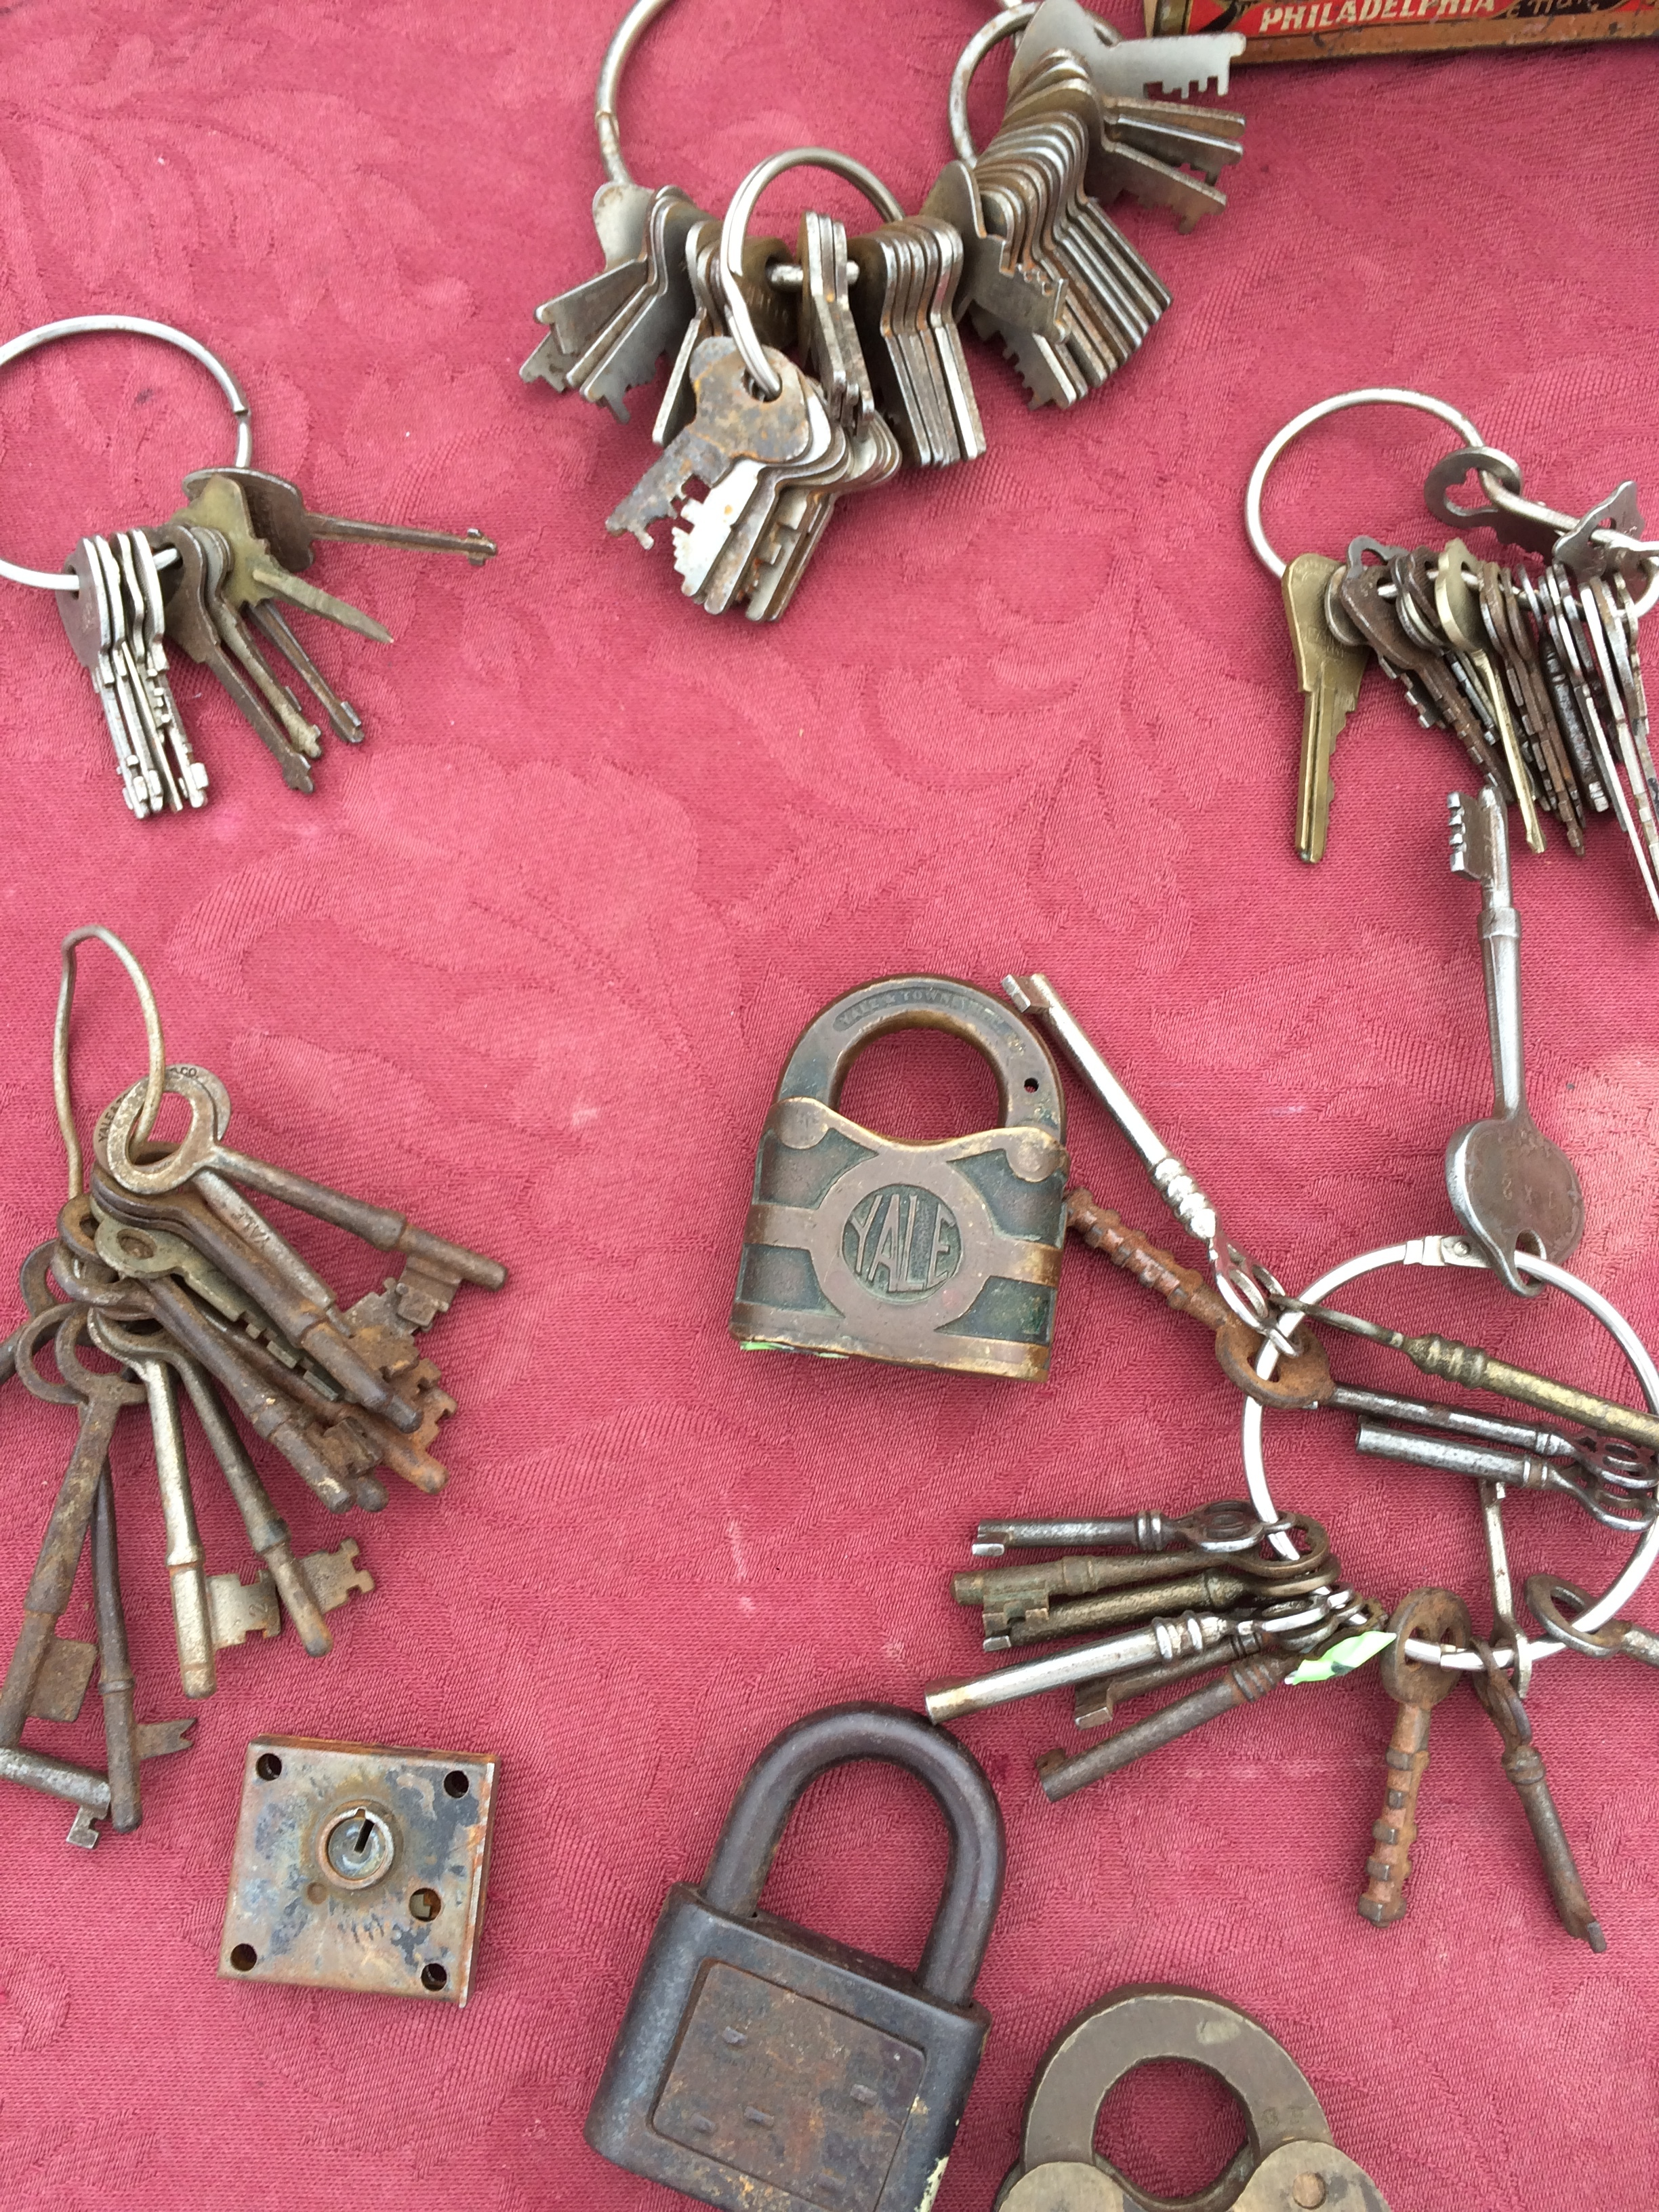 keys and the locks they don't open